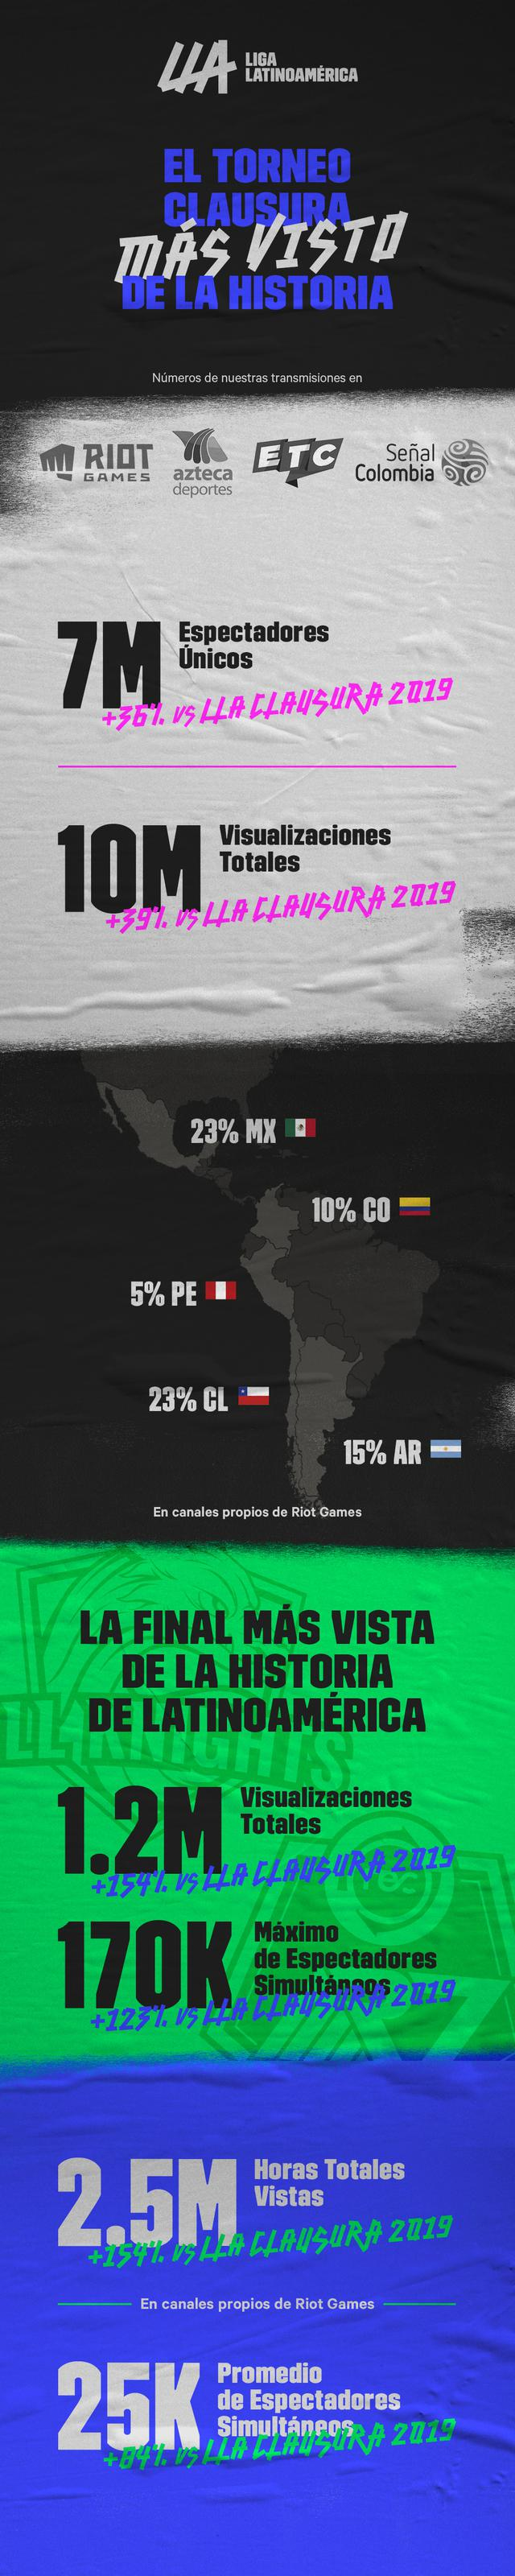 League of Legends: Rainbow7 vs.  All Knights was the most watched final in Latin American history.  (Photo: Riot Games)